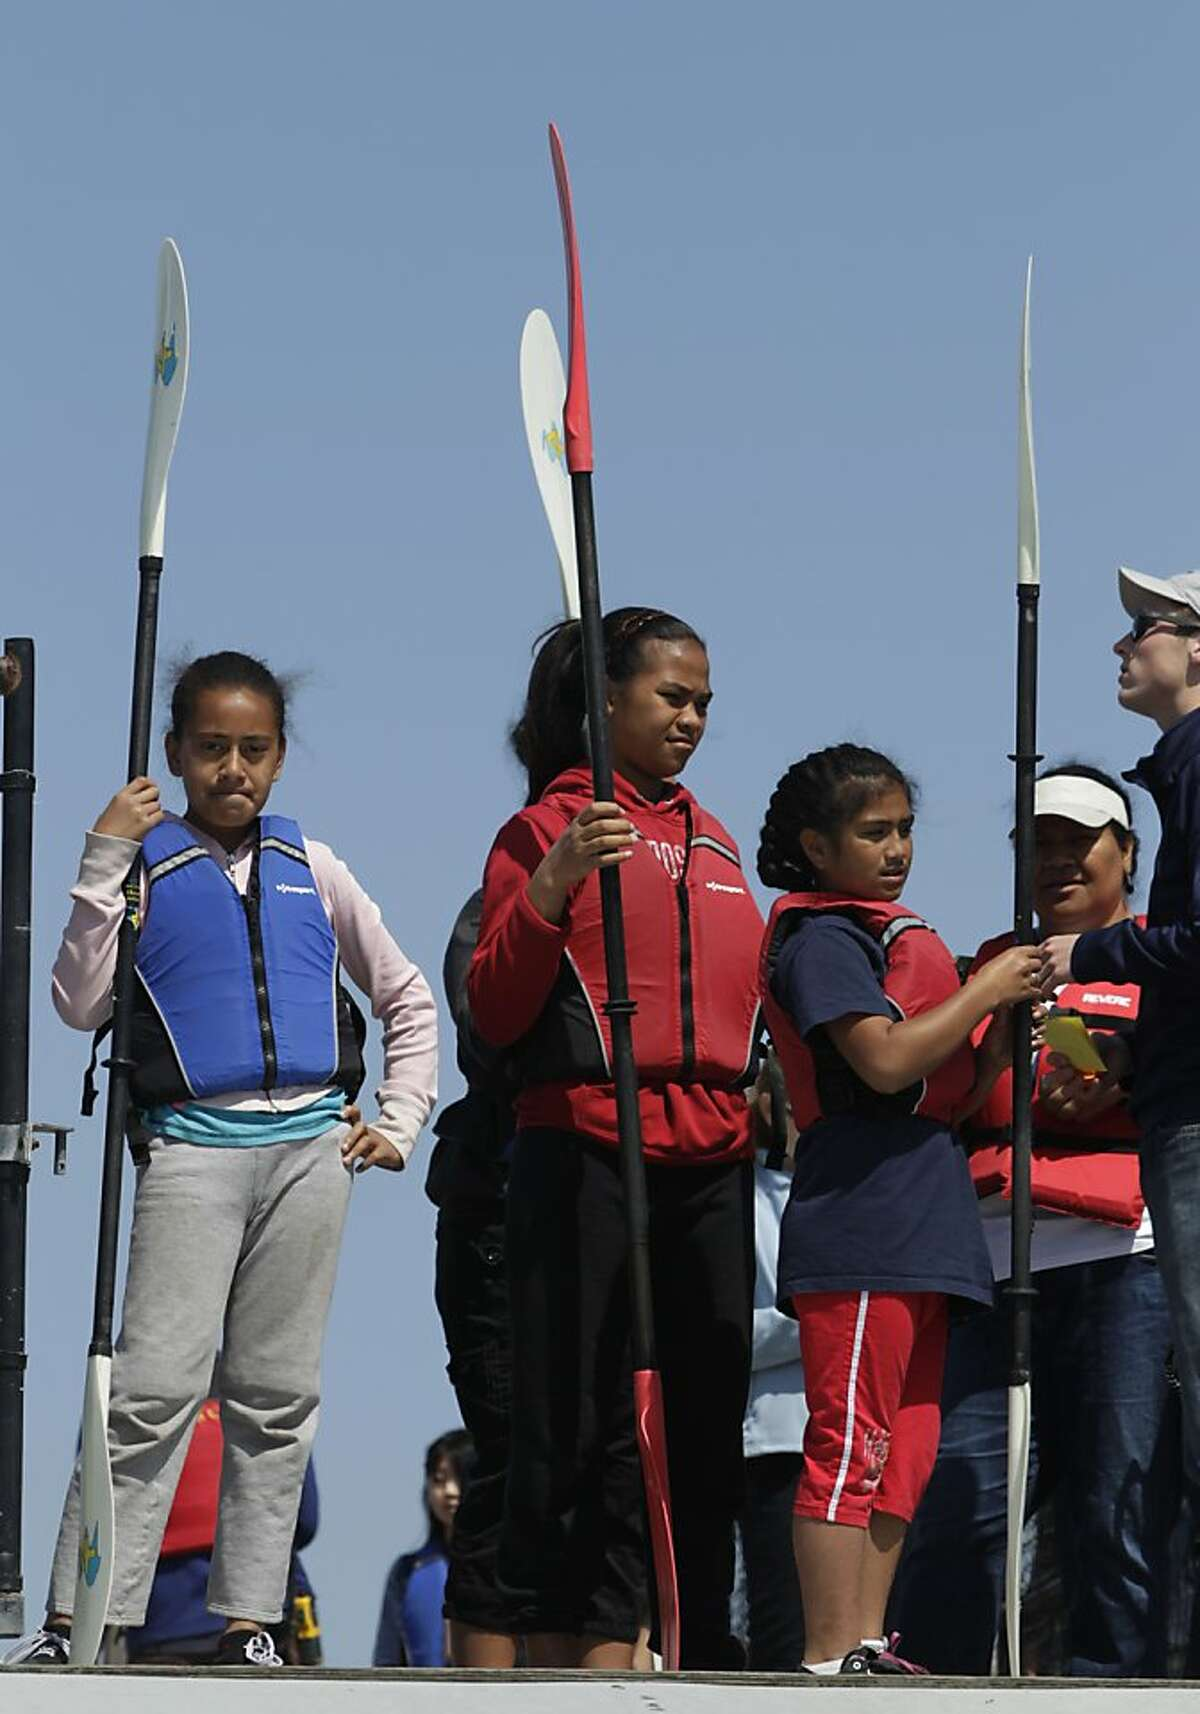 The Fakava family wait to be called to the dock for their turn to paddle kayaks at the Treasure Island Sailing Center in San Francisco, Calif. on the opening weekend of the yachting season on Saturday, April 27, 2013. The Kakavas drove up from Fresno to participate in the free event.